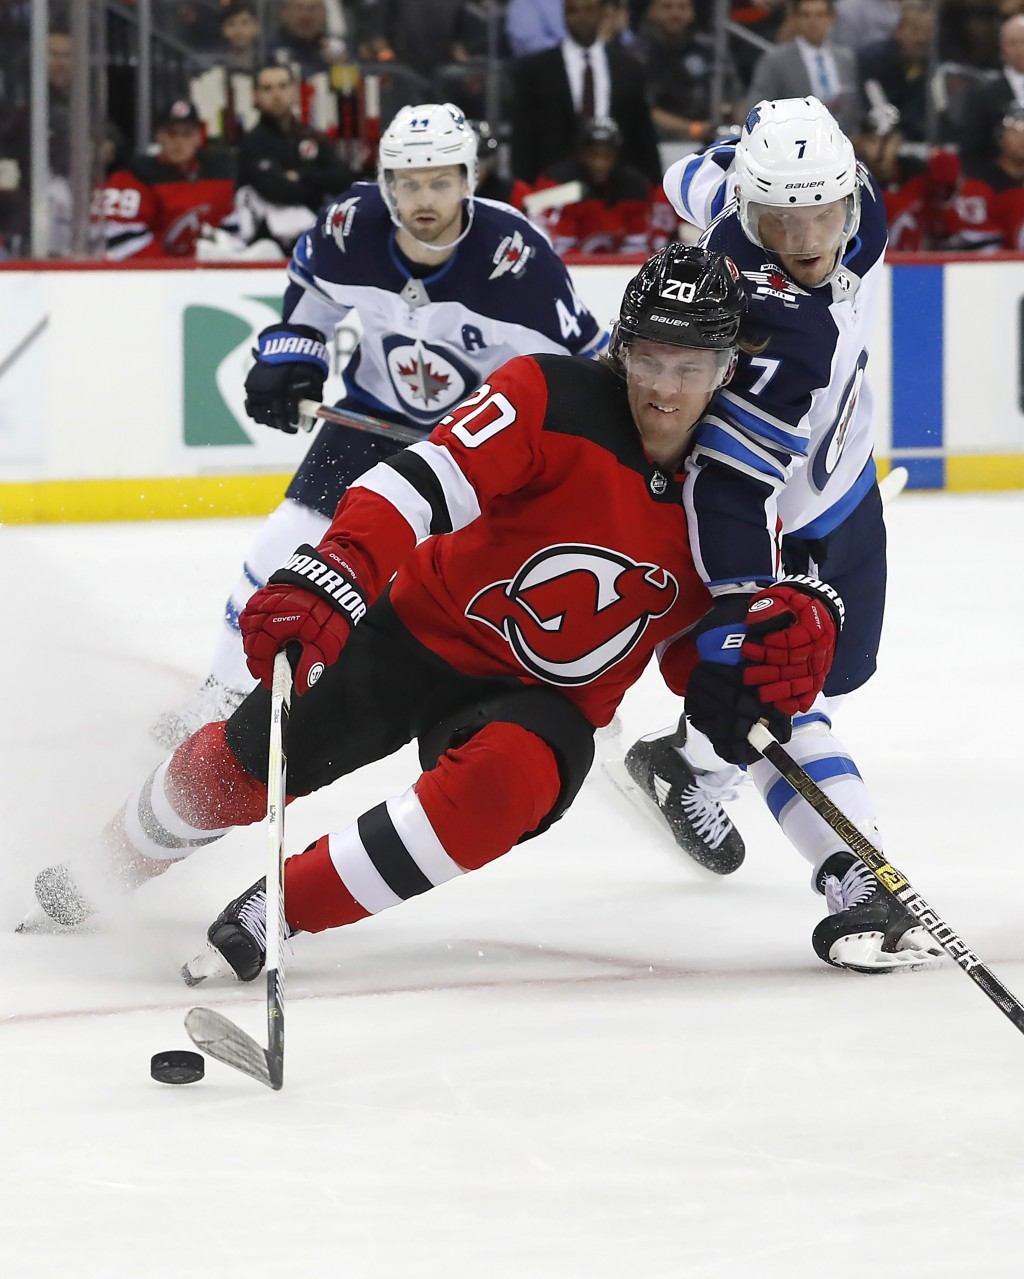 New Jersey Devils center Blake Coleman (20) works against Winnipeg Jets defenseman Dmitry Kulikov (7) for the puck during the second period of an NHL ...